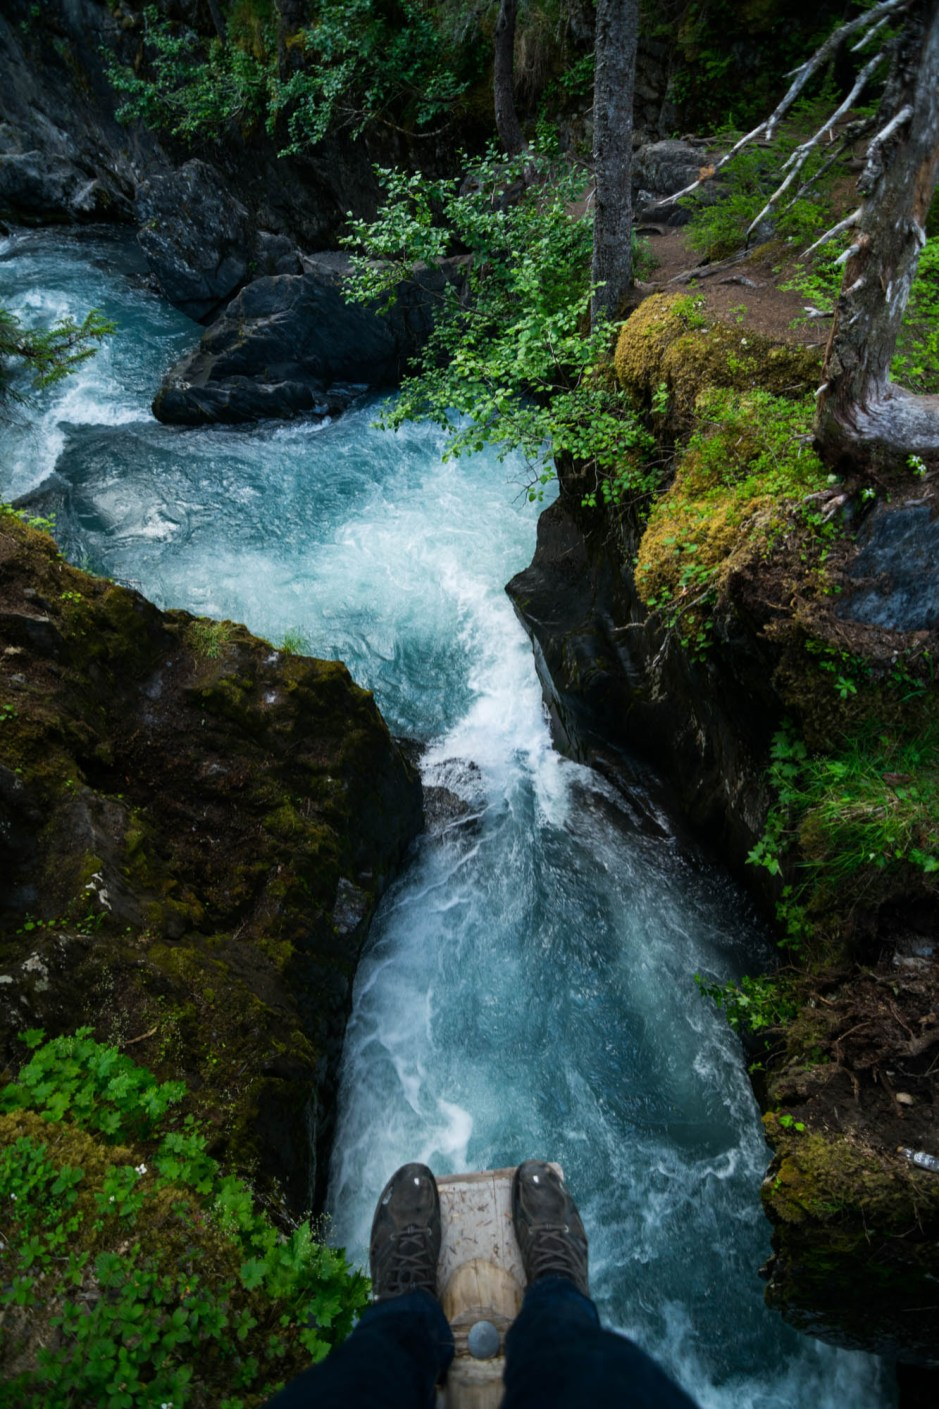 A pair of legs are seen standing on a plank poised to jump into a rushing forest river in Girdwood Alaska.